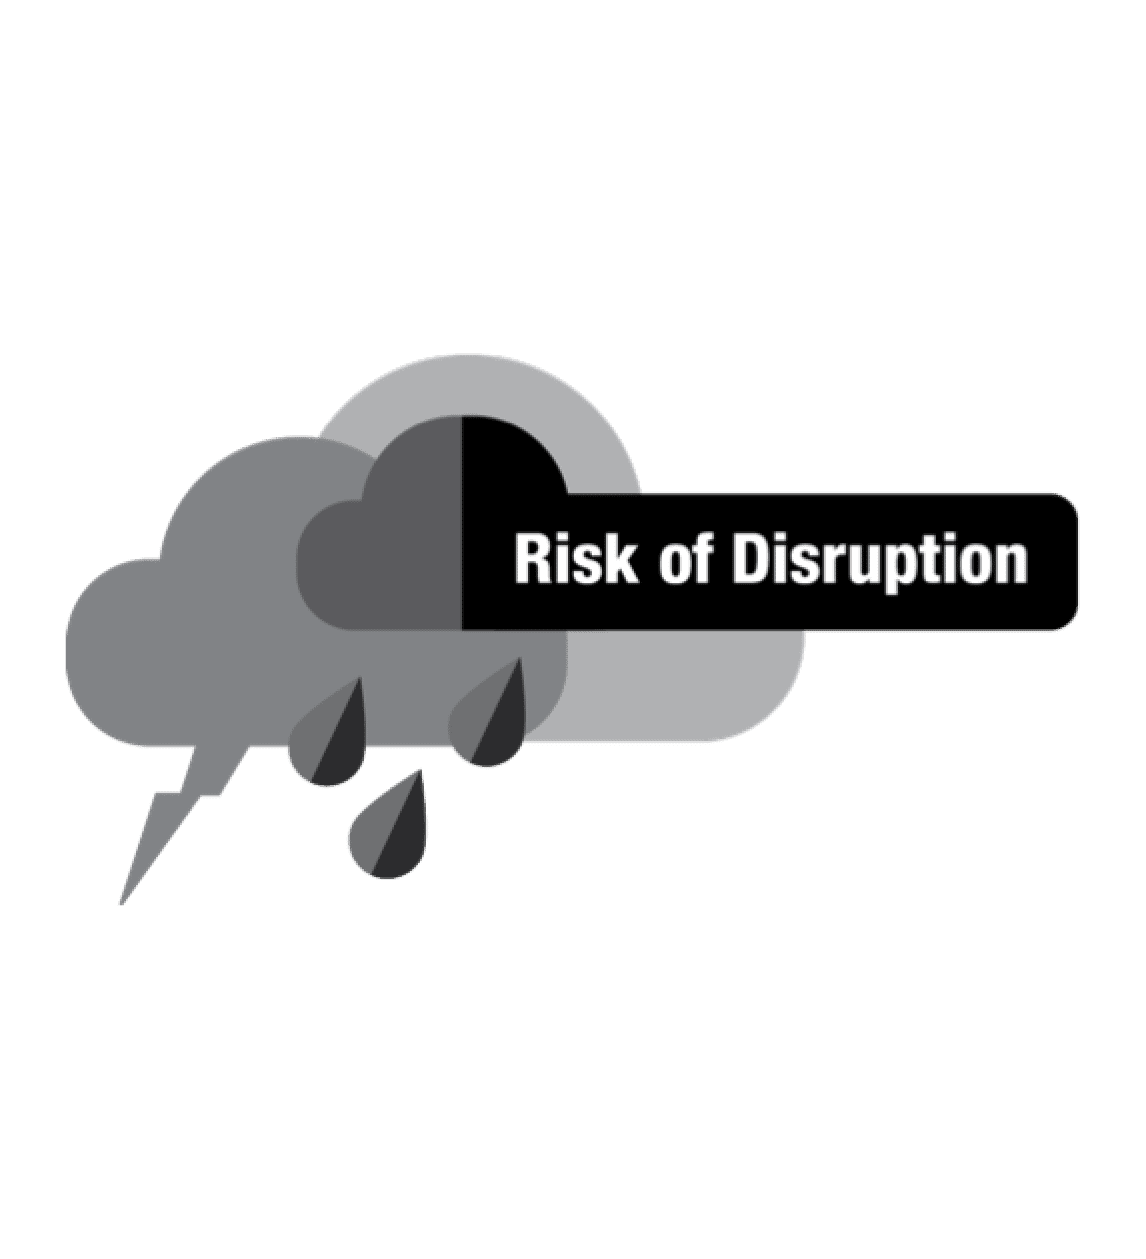 Risk-of-Disruption2